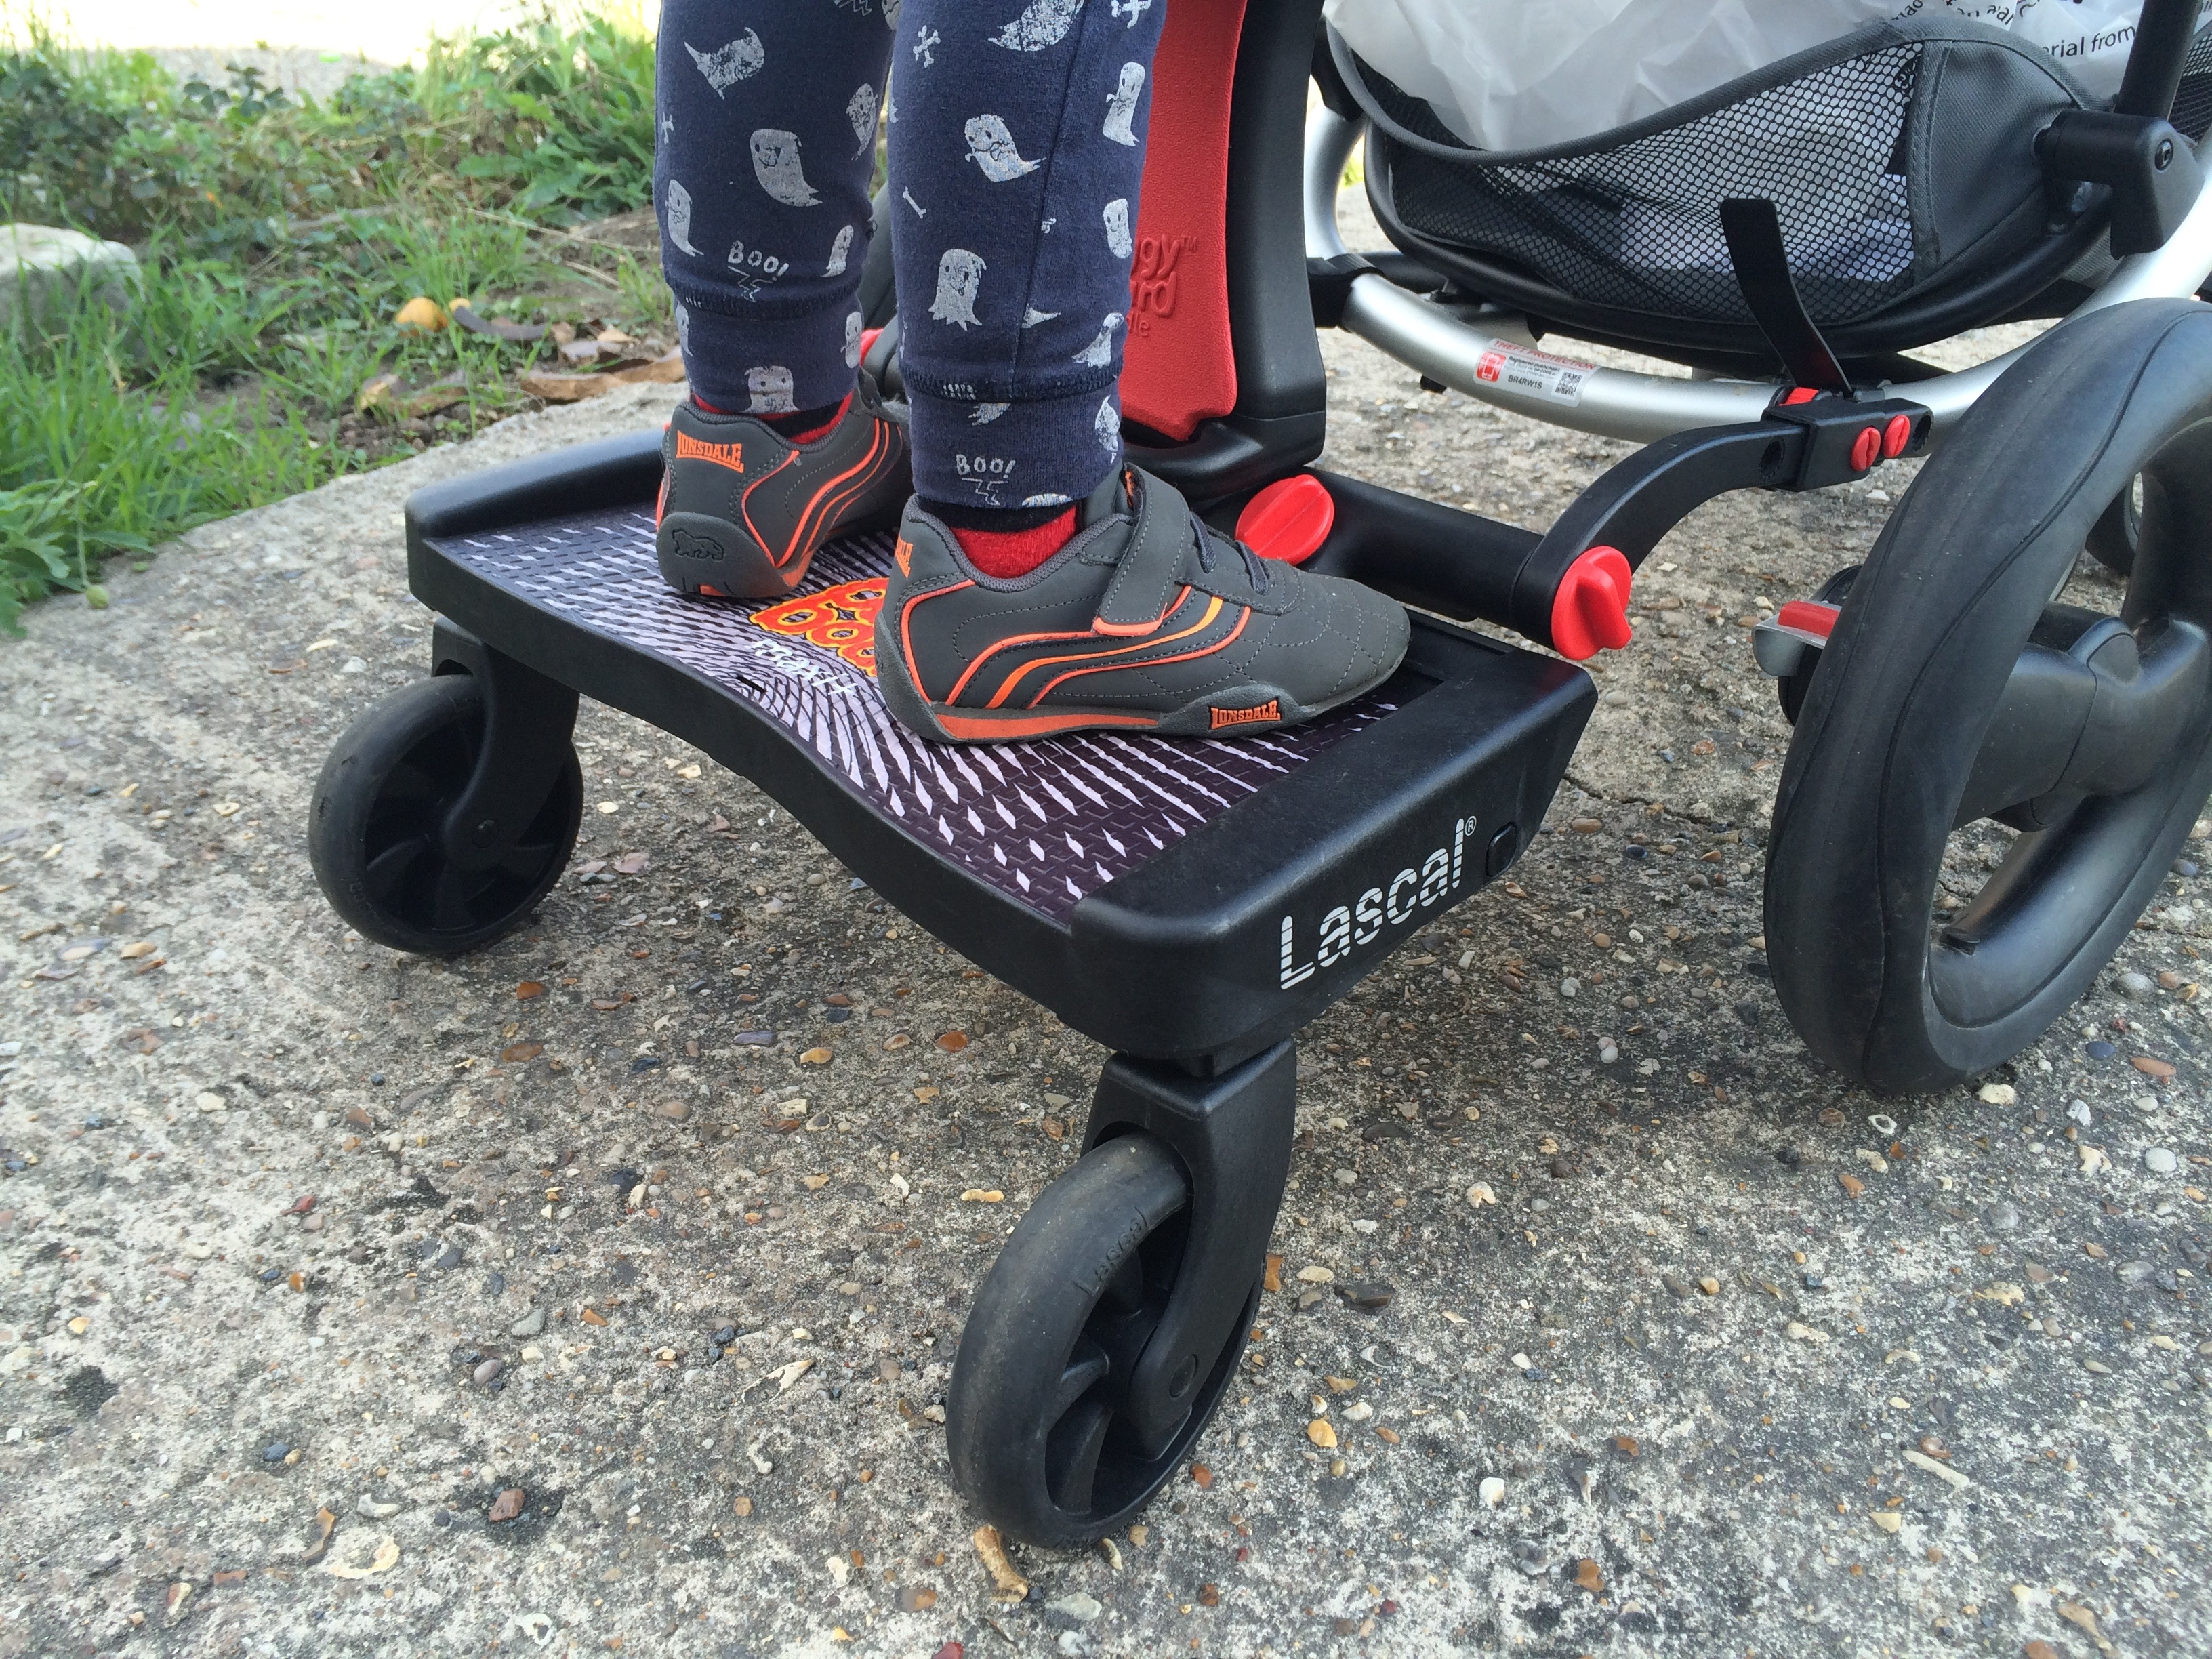 Lascal Buggy Board Maxi Plus Review